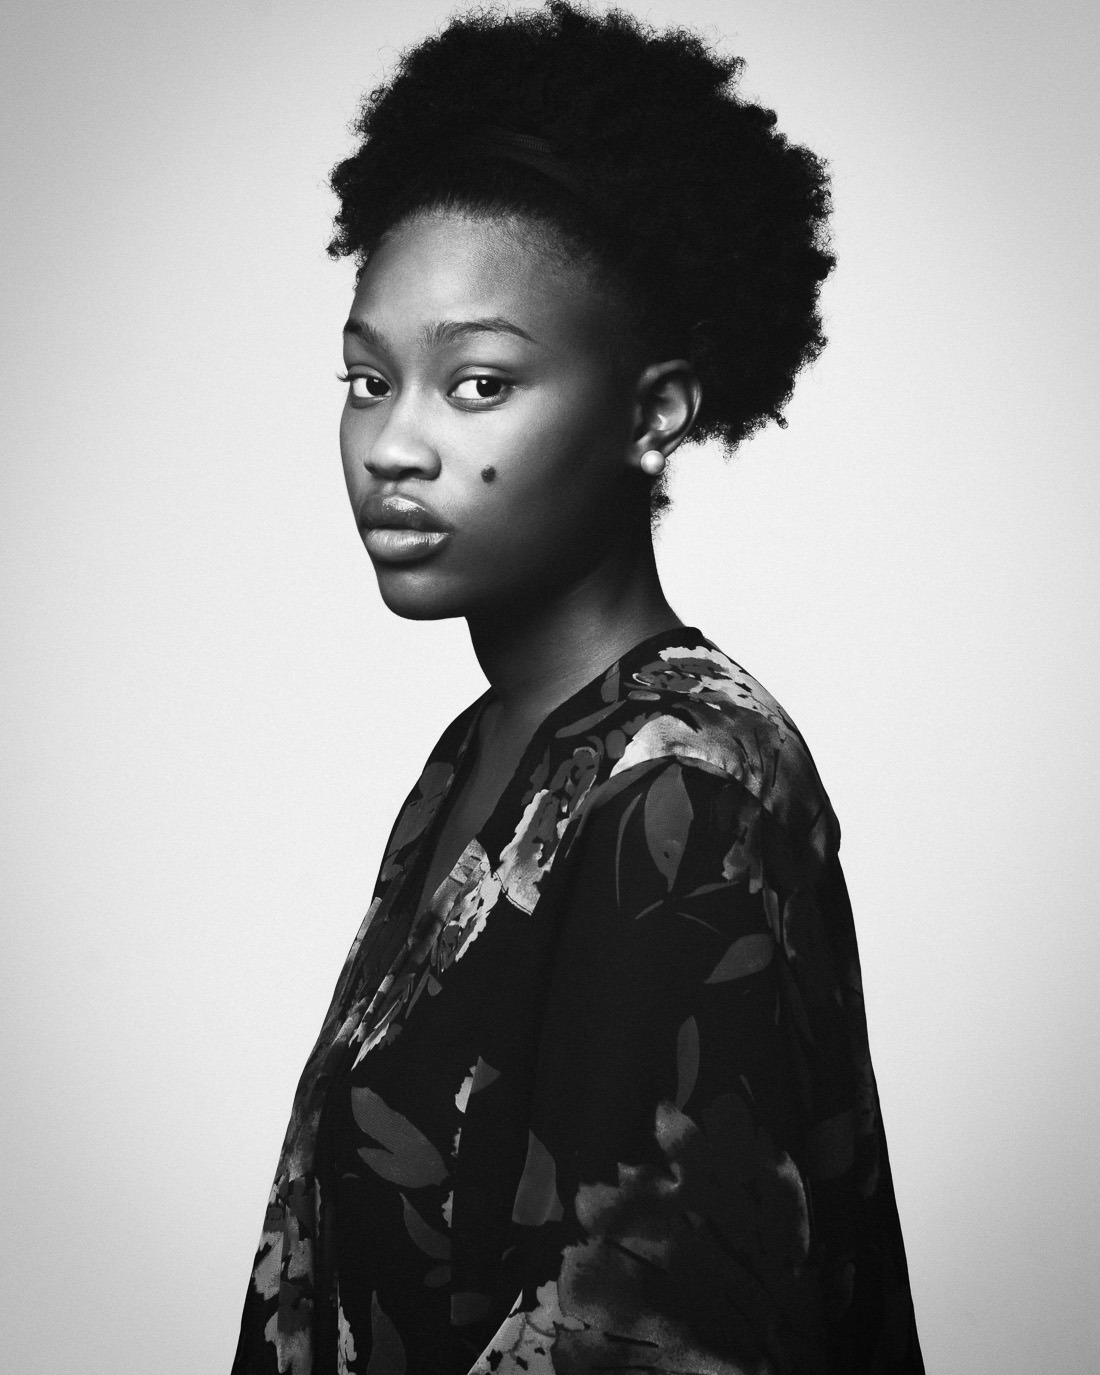 Coiffure D'afro Photography Black Girls African Africa White And Black